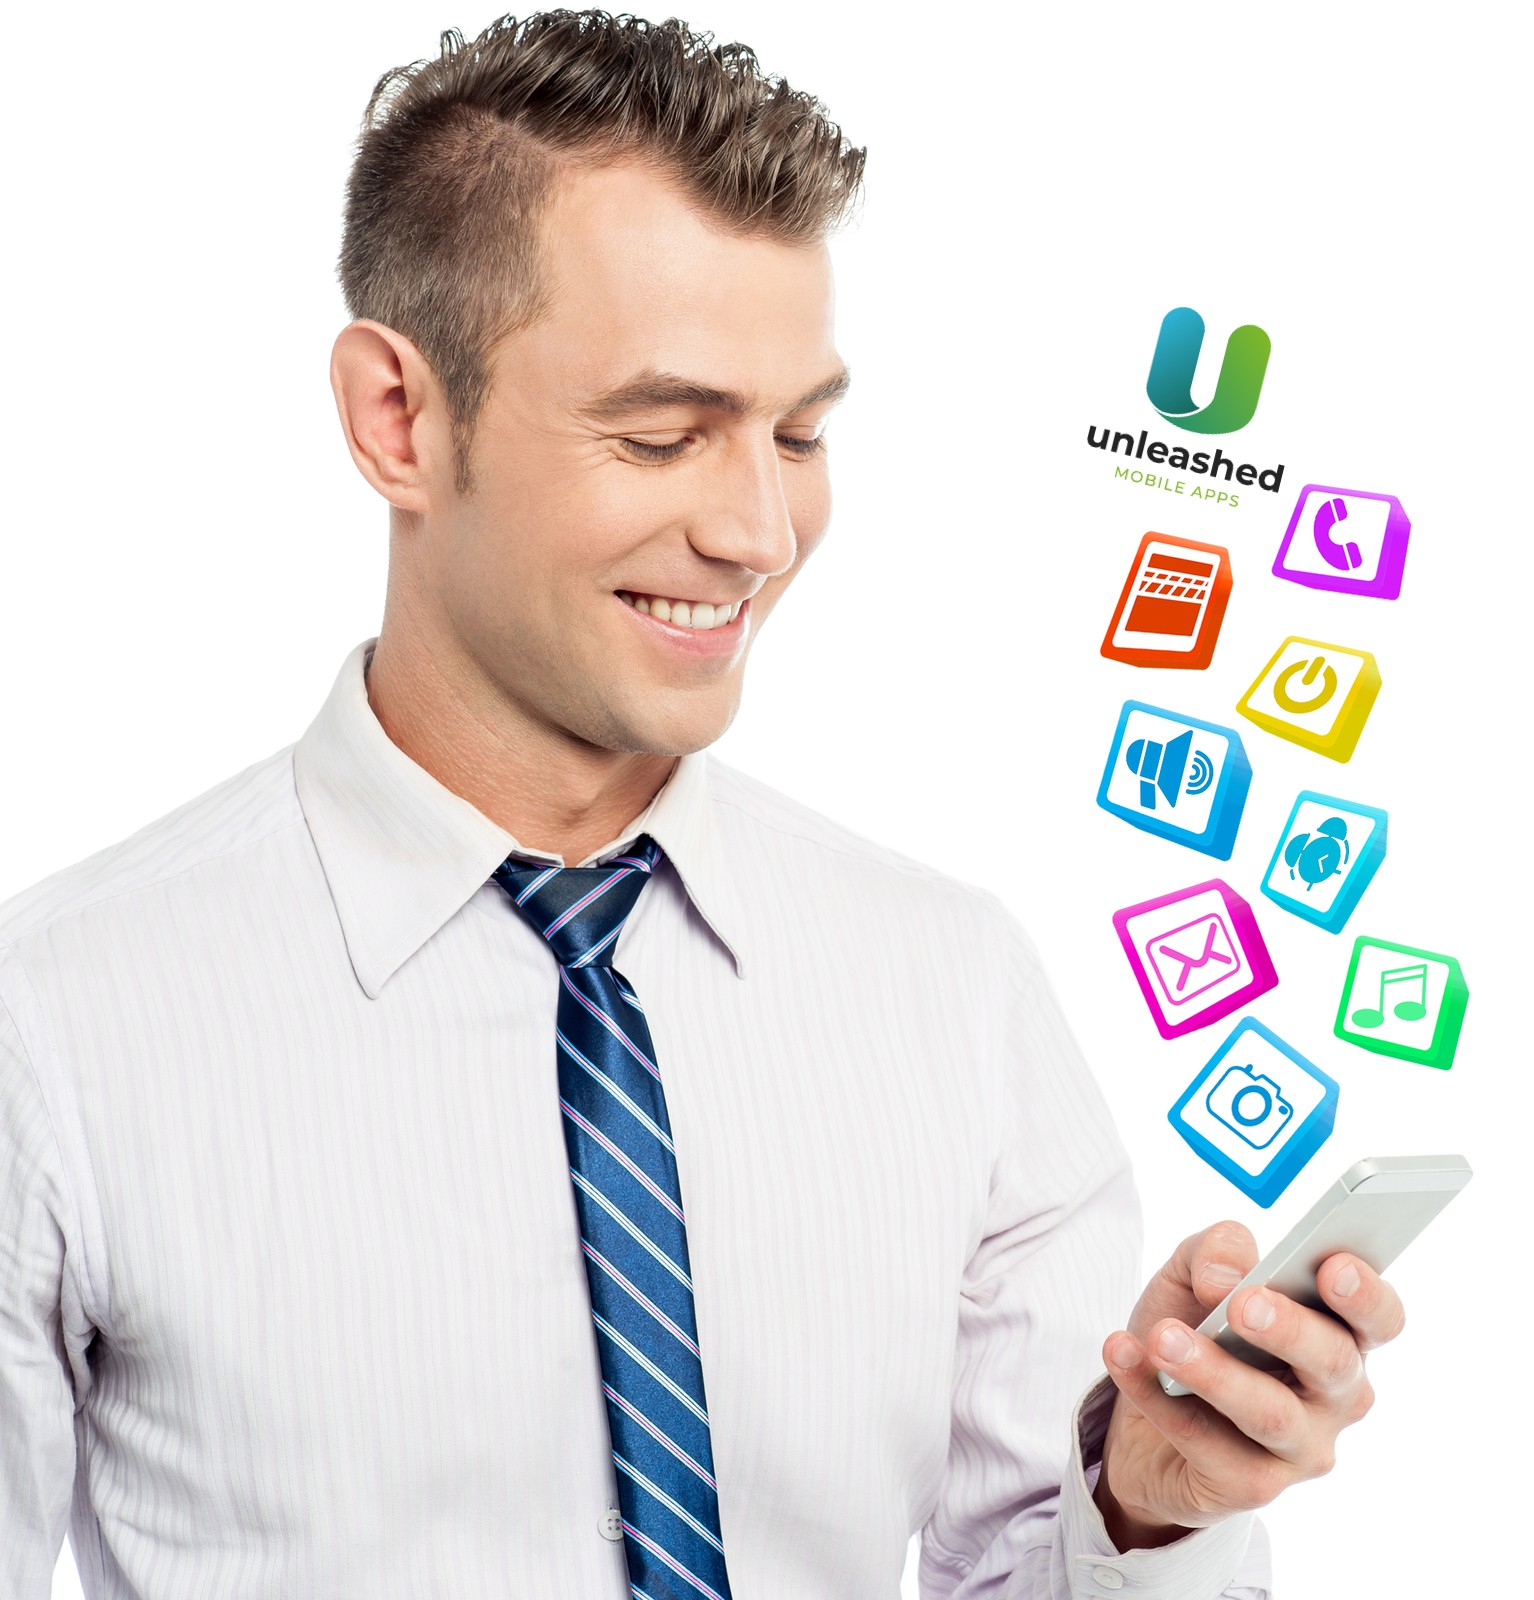 benefits of mobile apps and how to improve your business